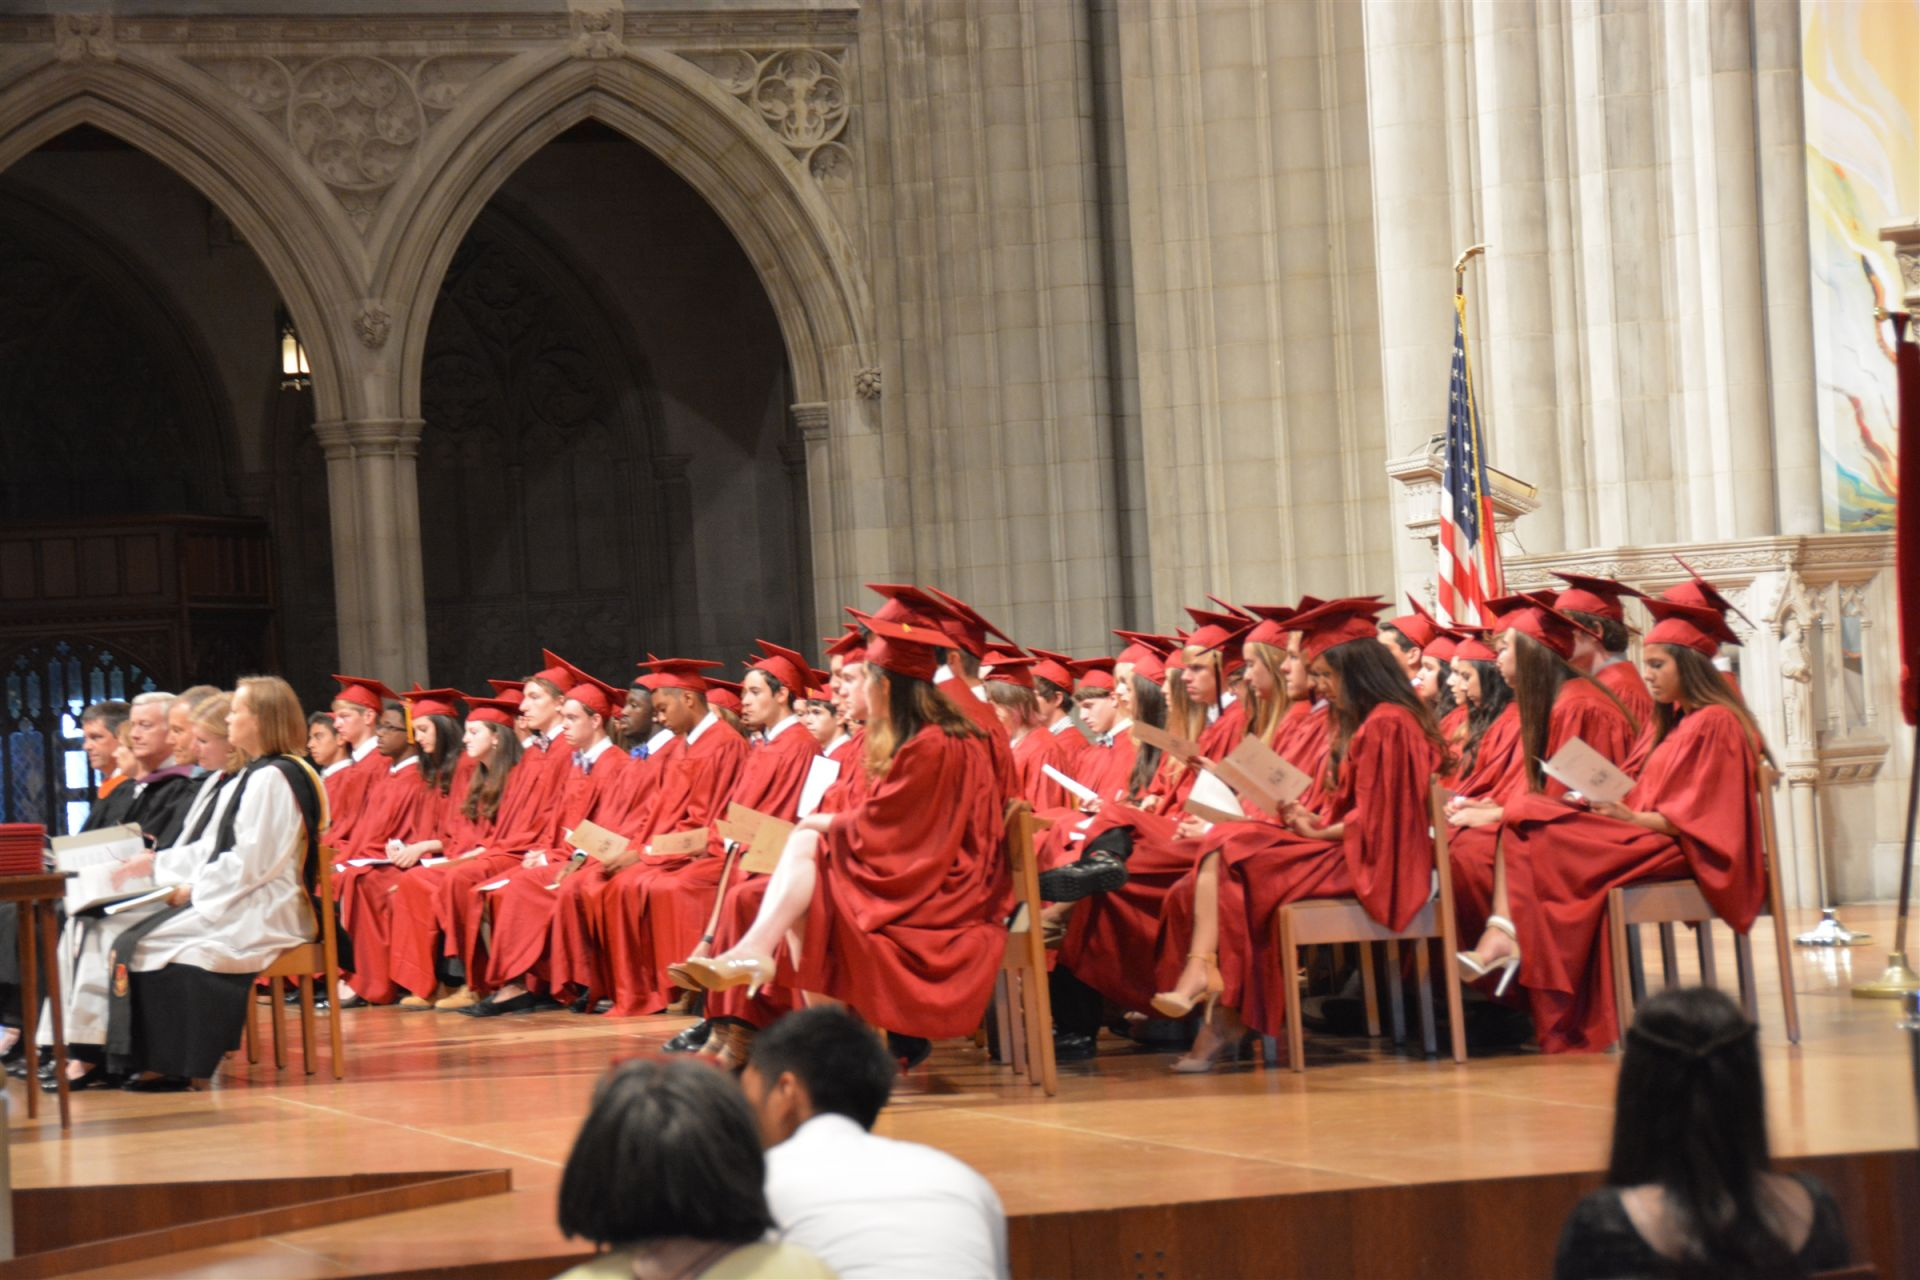 St. Andrew's Holds Its 33rd Commencement at Washington National Cathedral